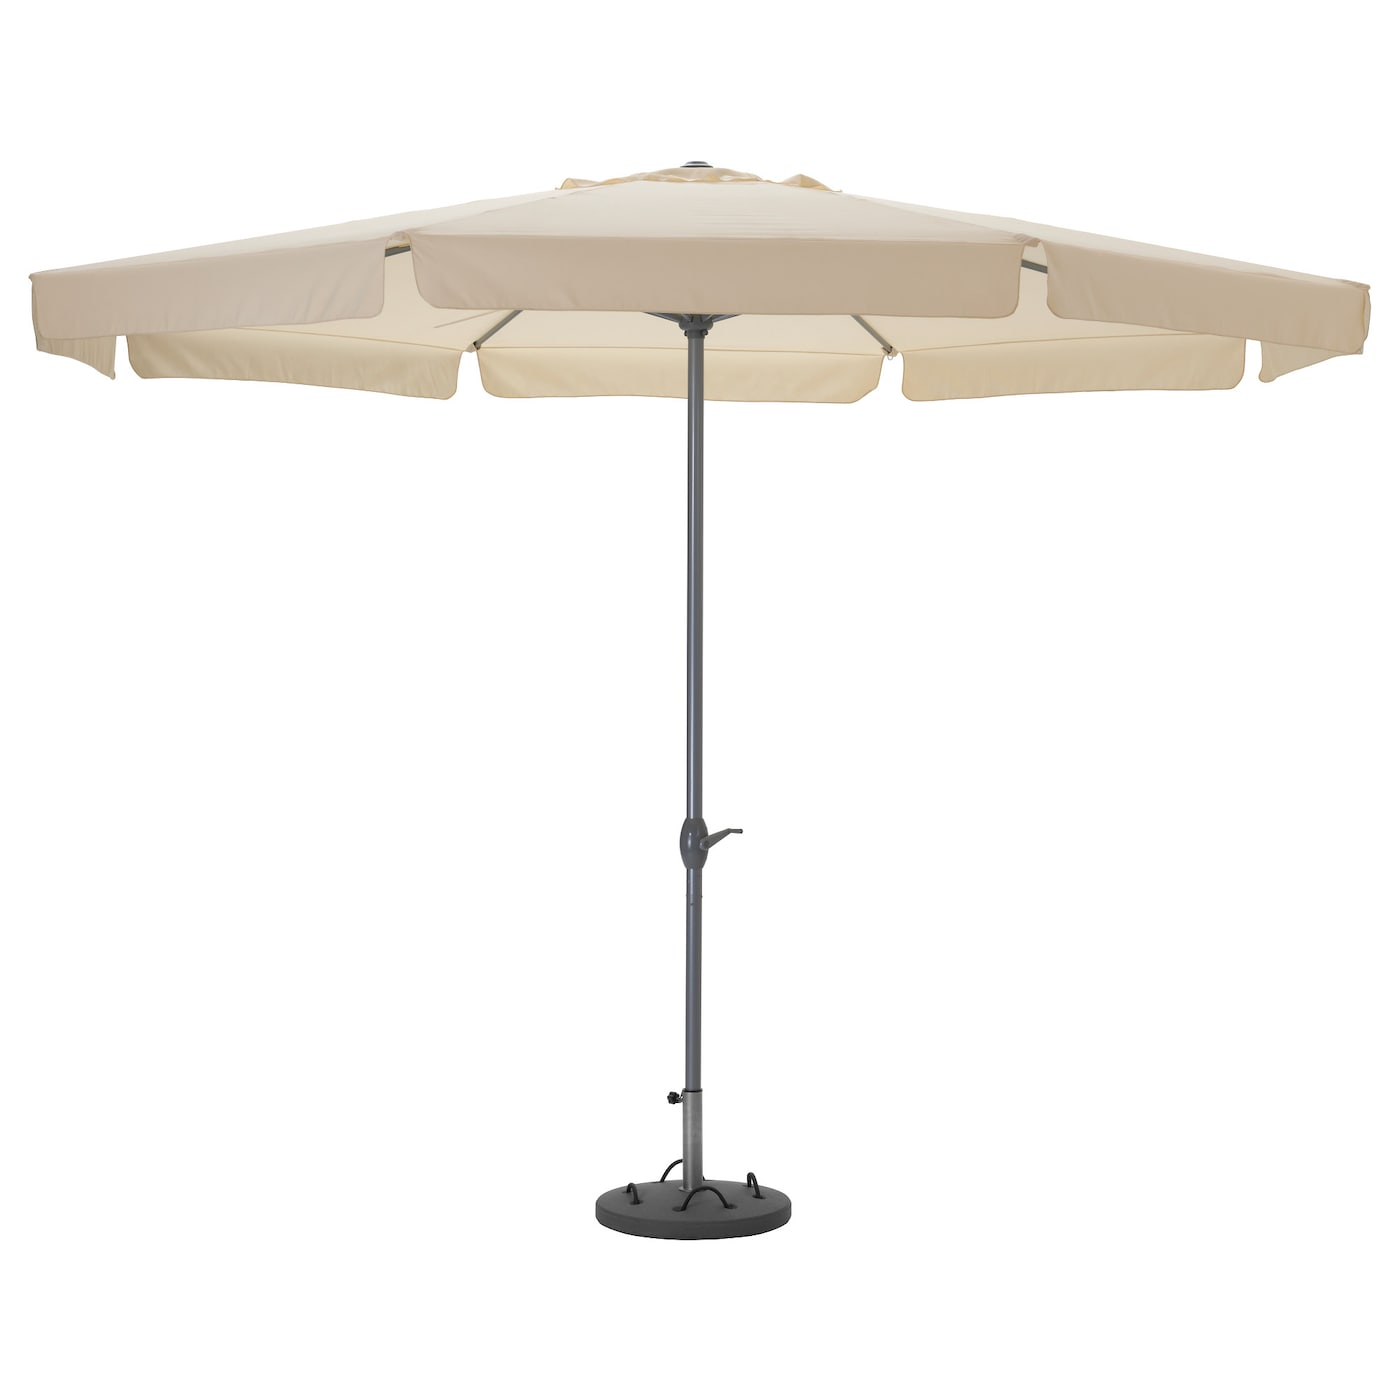 IKEA LÖKÖ/LJUSTERÖ parasol with base The parasol is easy to open or close by using the crank.